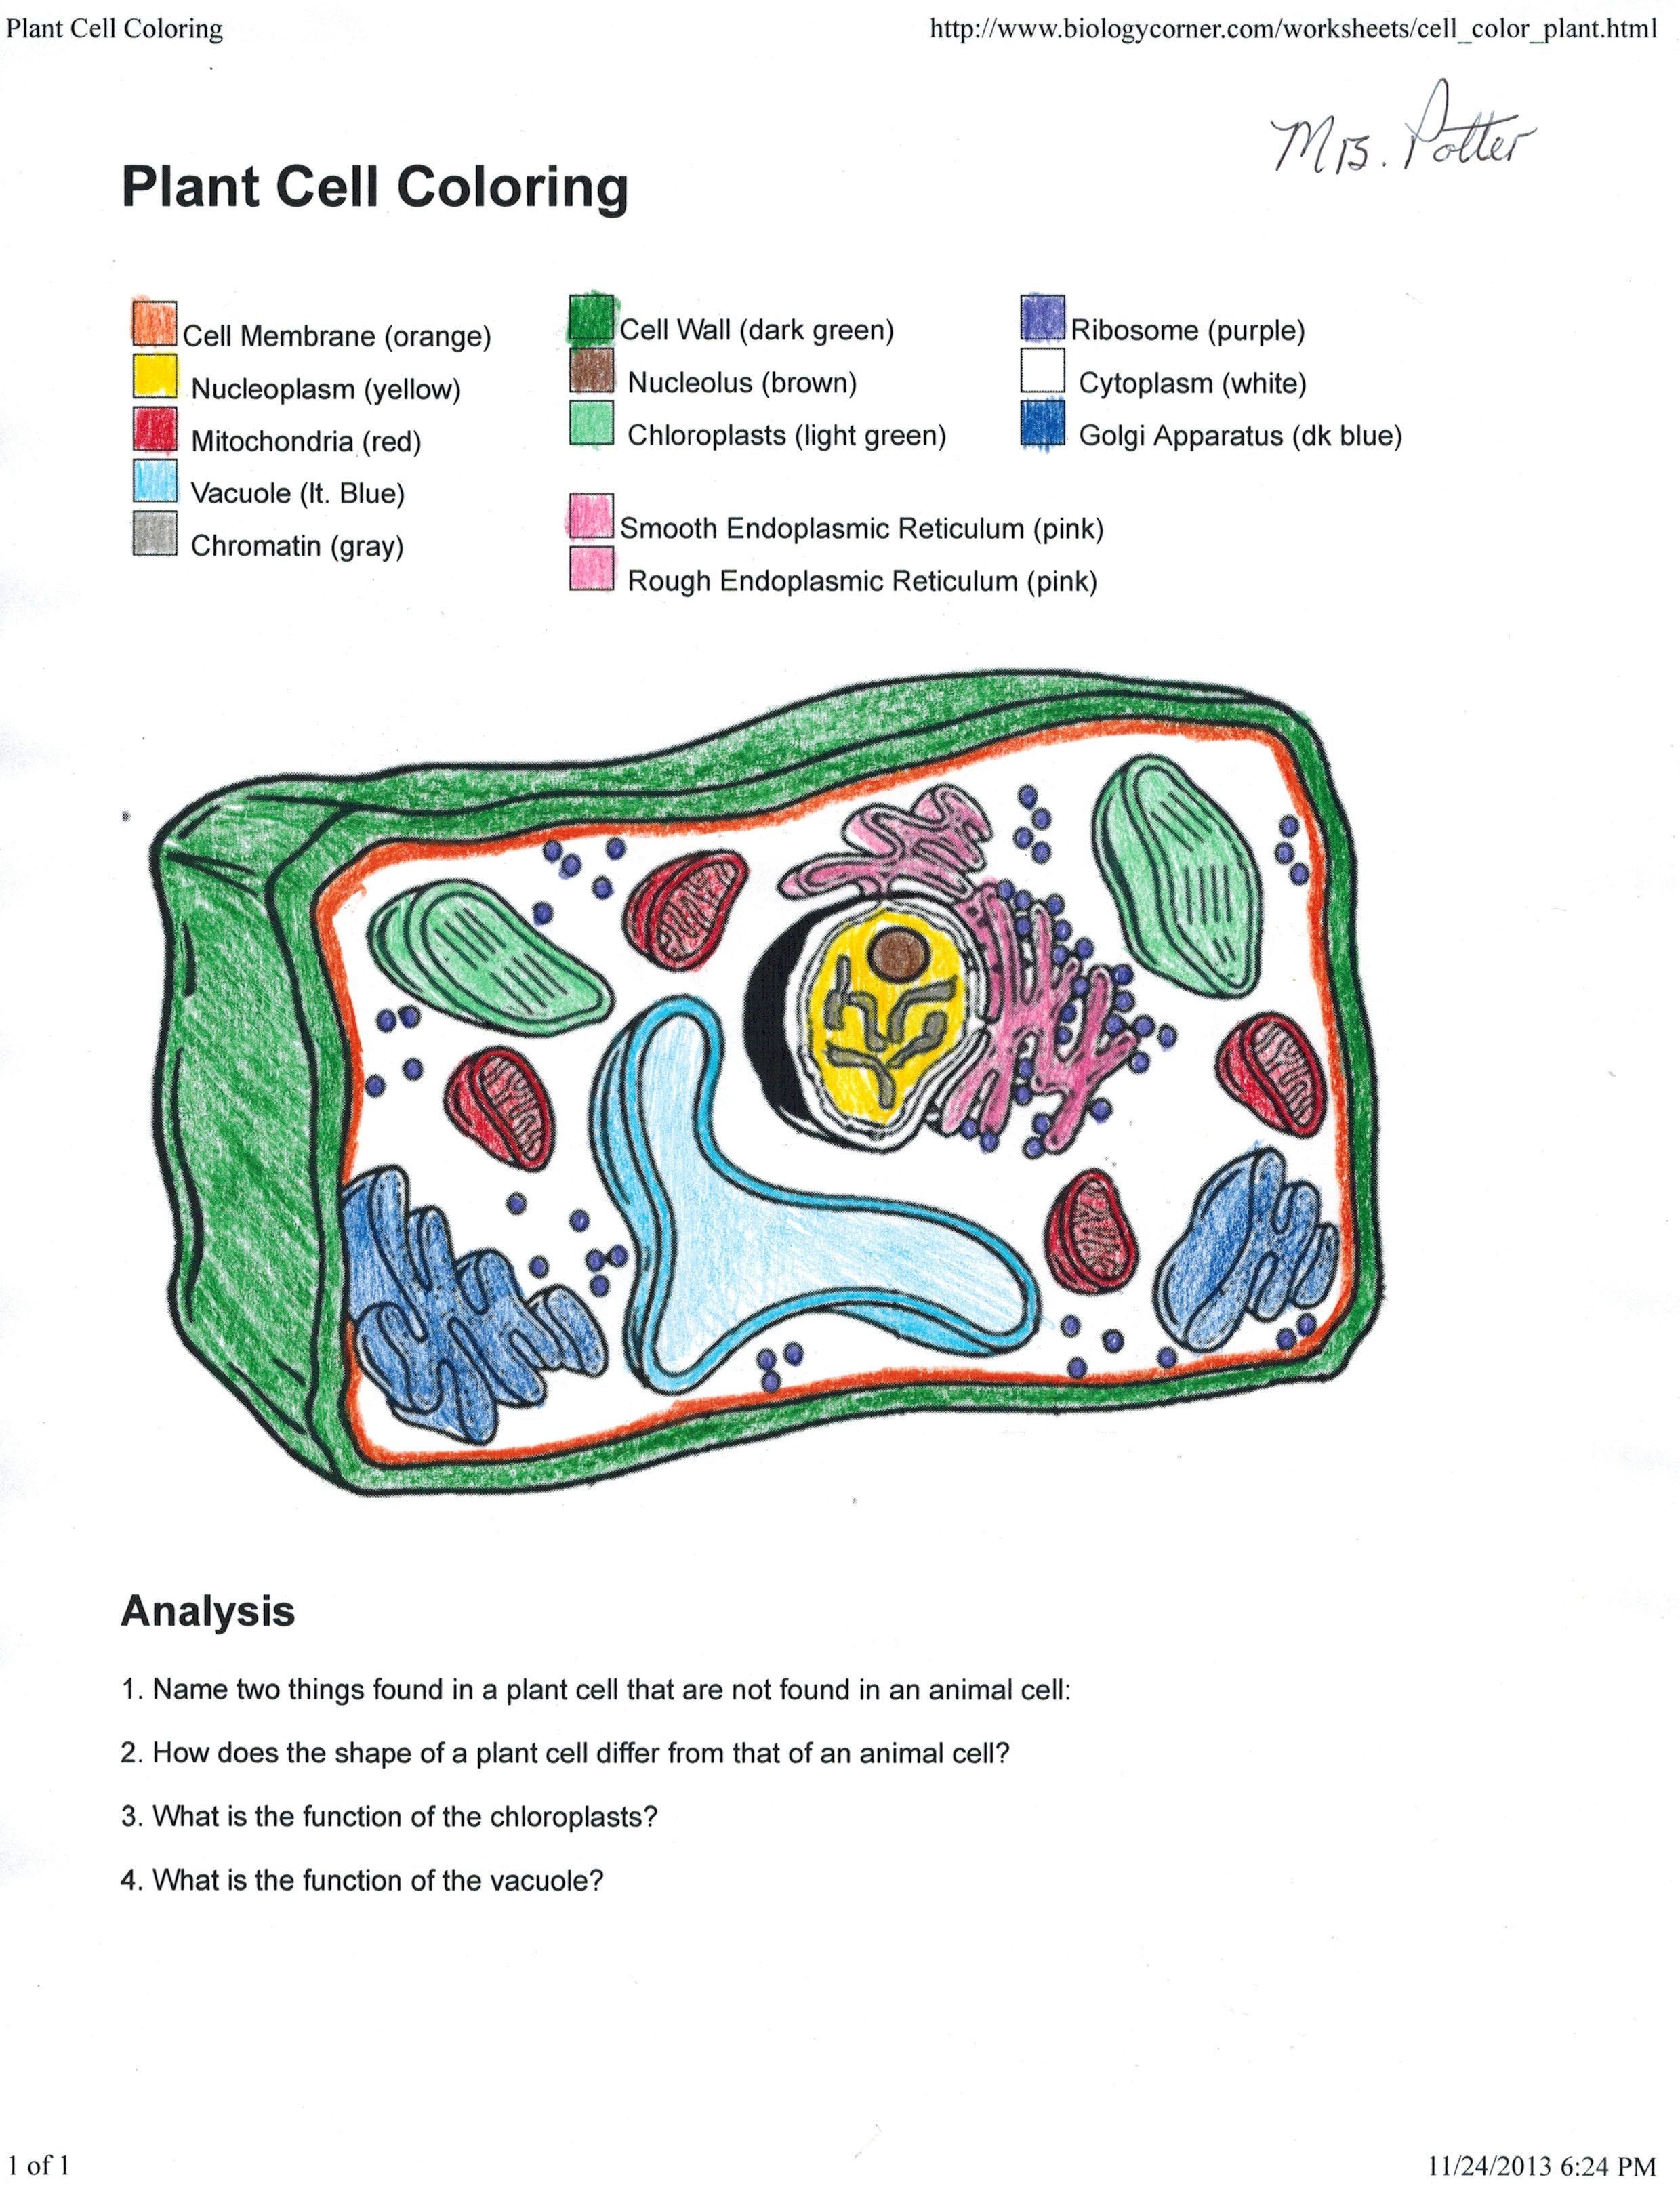 Plant Cell Coloring Key 0 On Plant Cell Coloring Key With